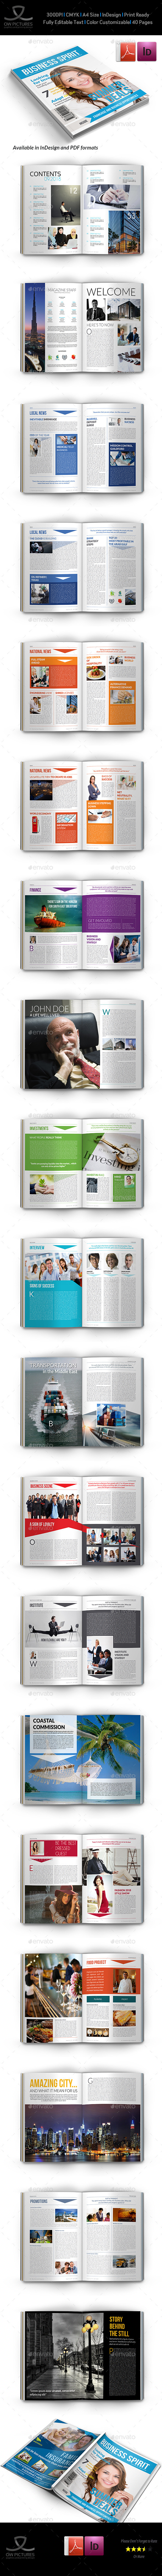 Business Spirit Newsletter Magazine - 40 Pages V.3 - Magazines Print Templates